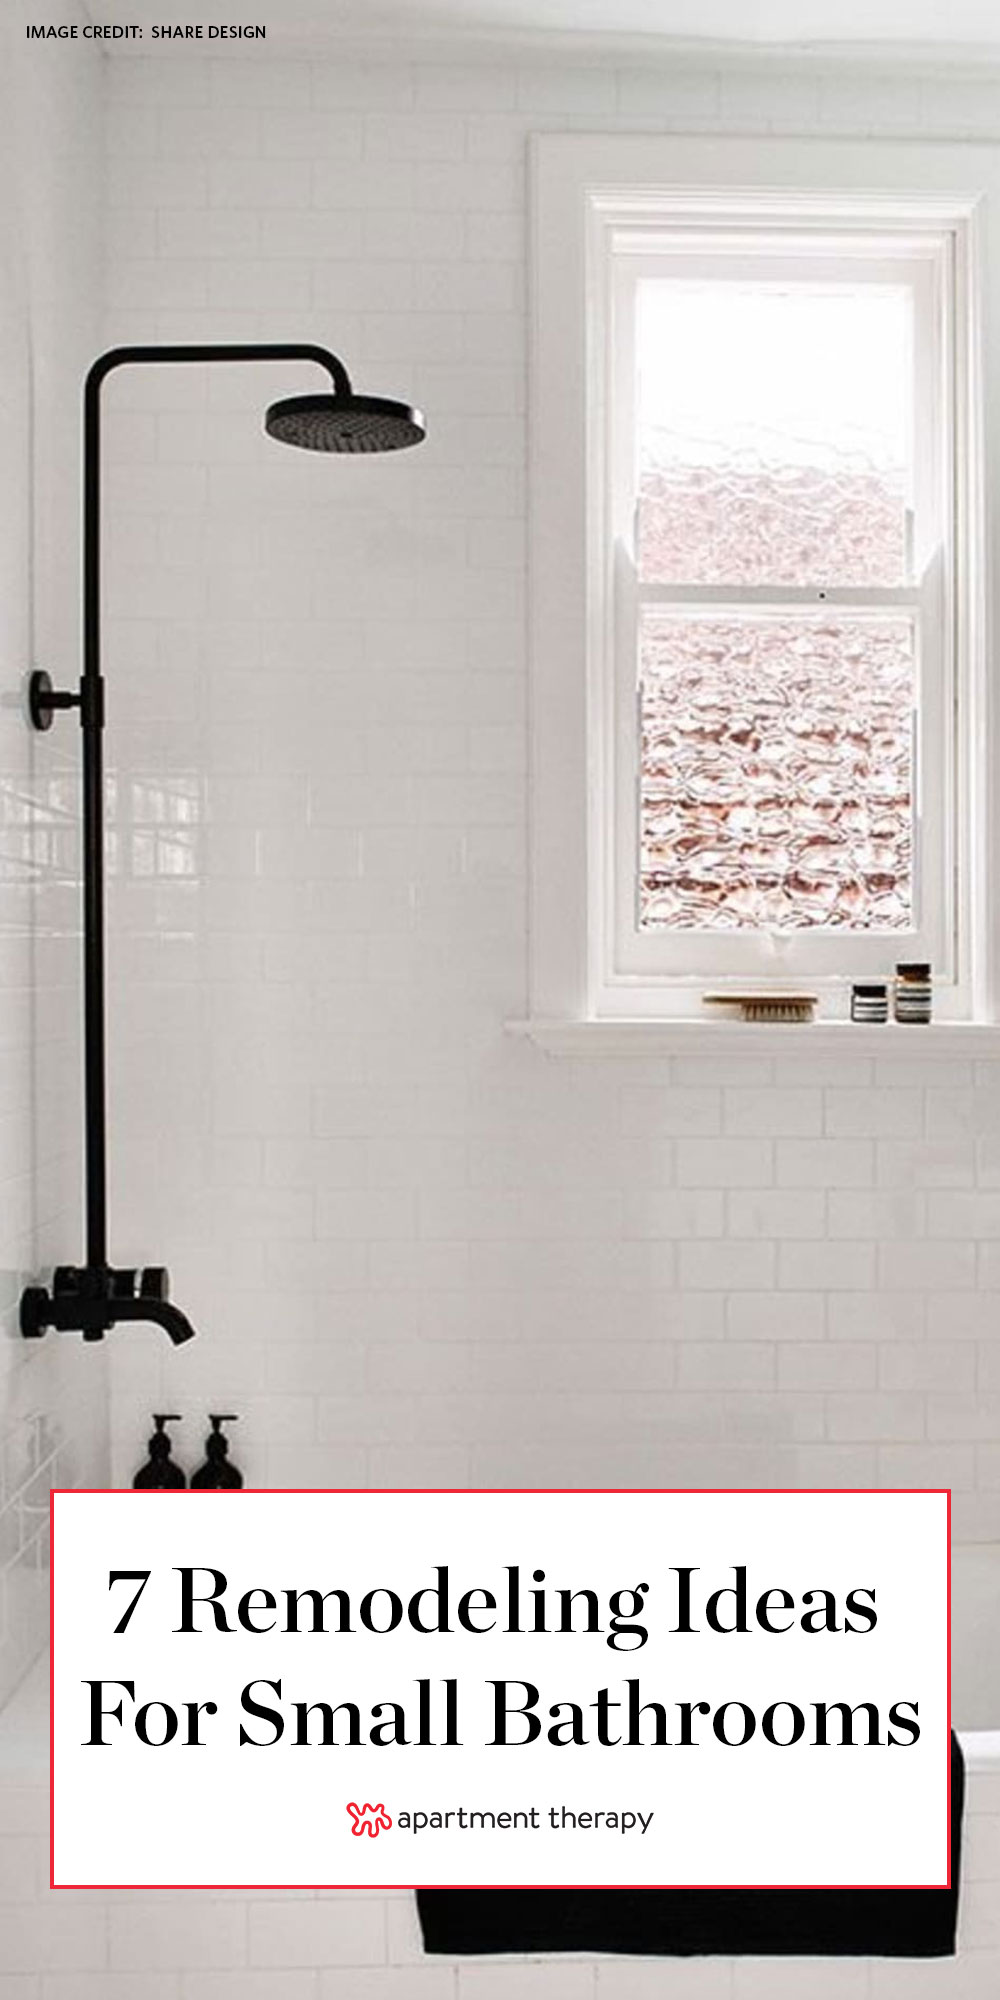 7 Small Bathroom Remodel Ideas Renovation Pictures Of Small Bathrooms Apartment Therapy